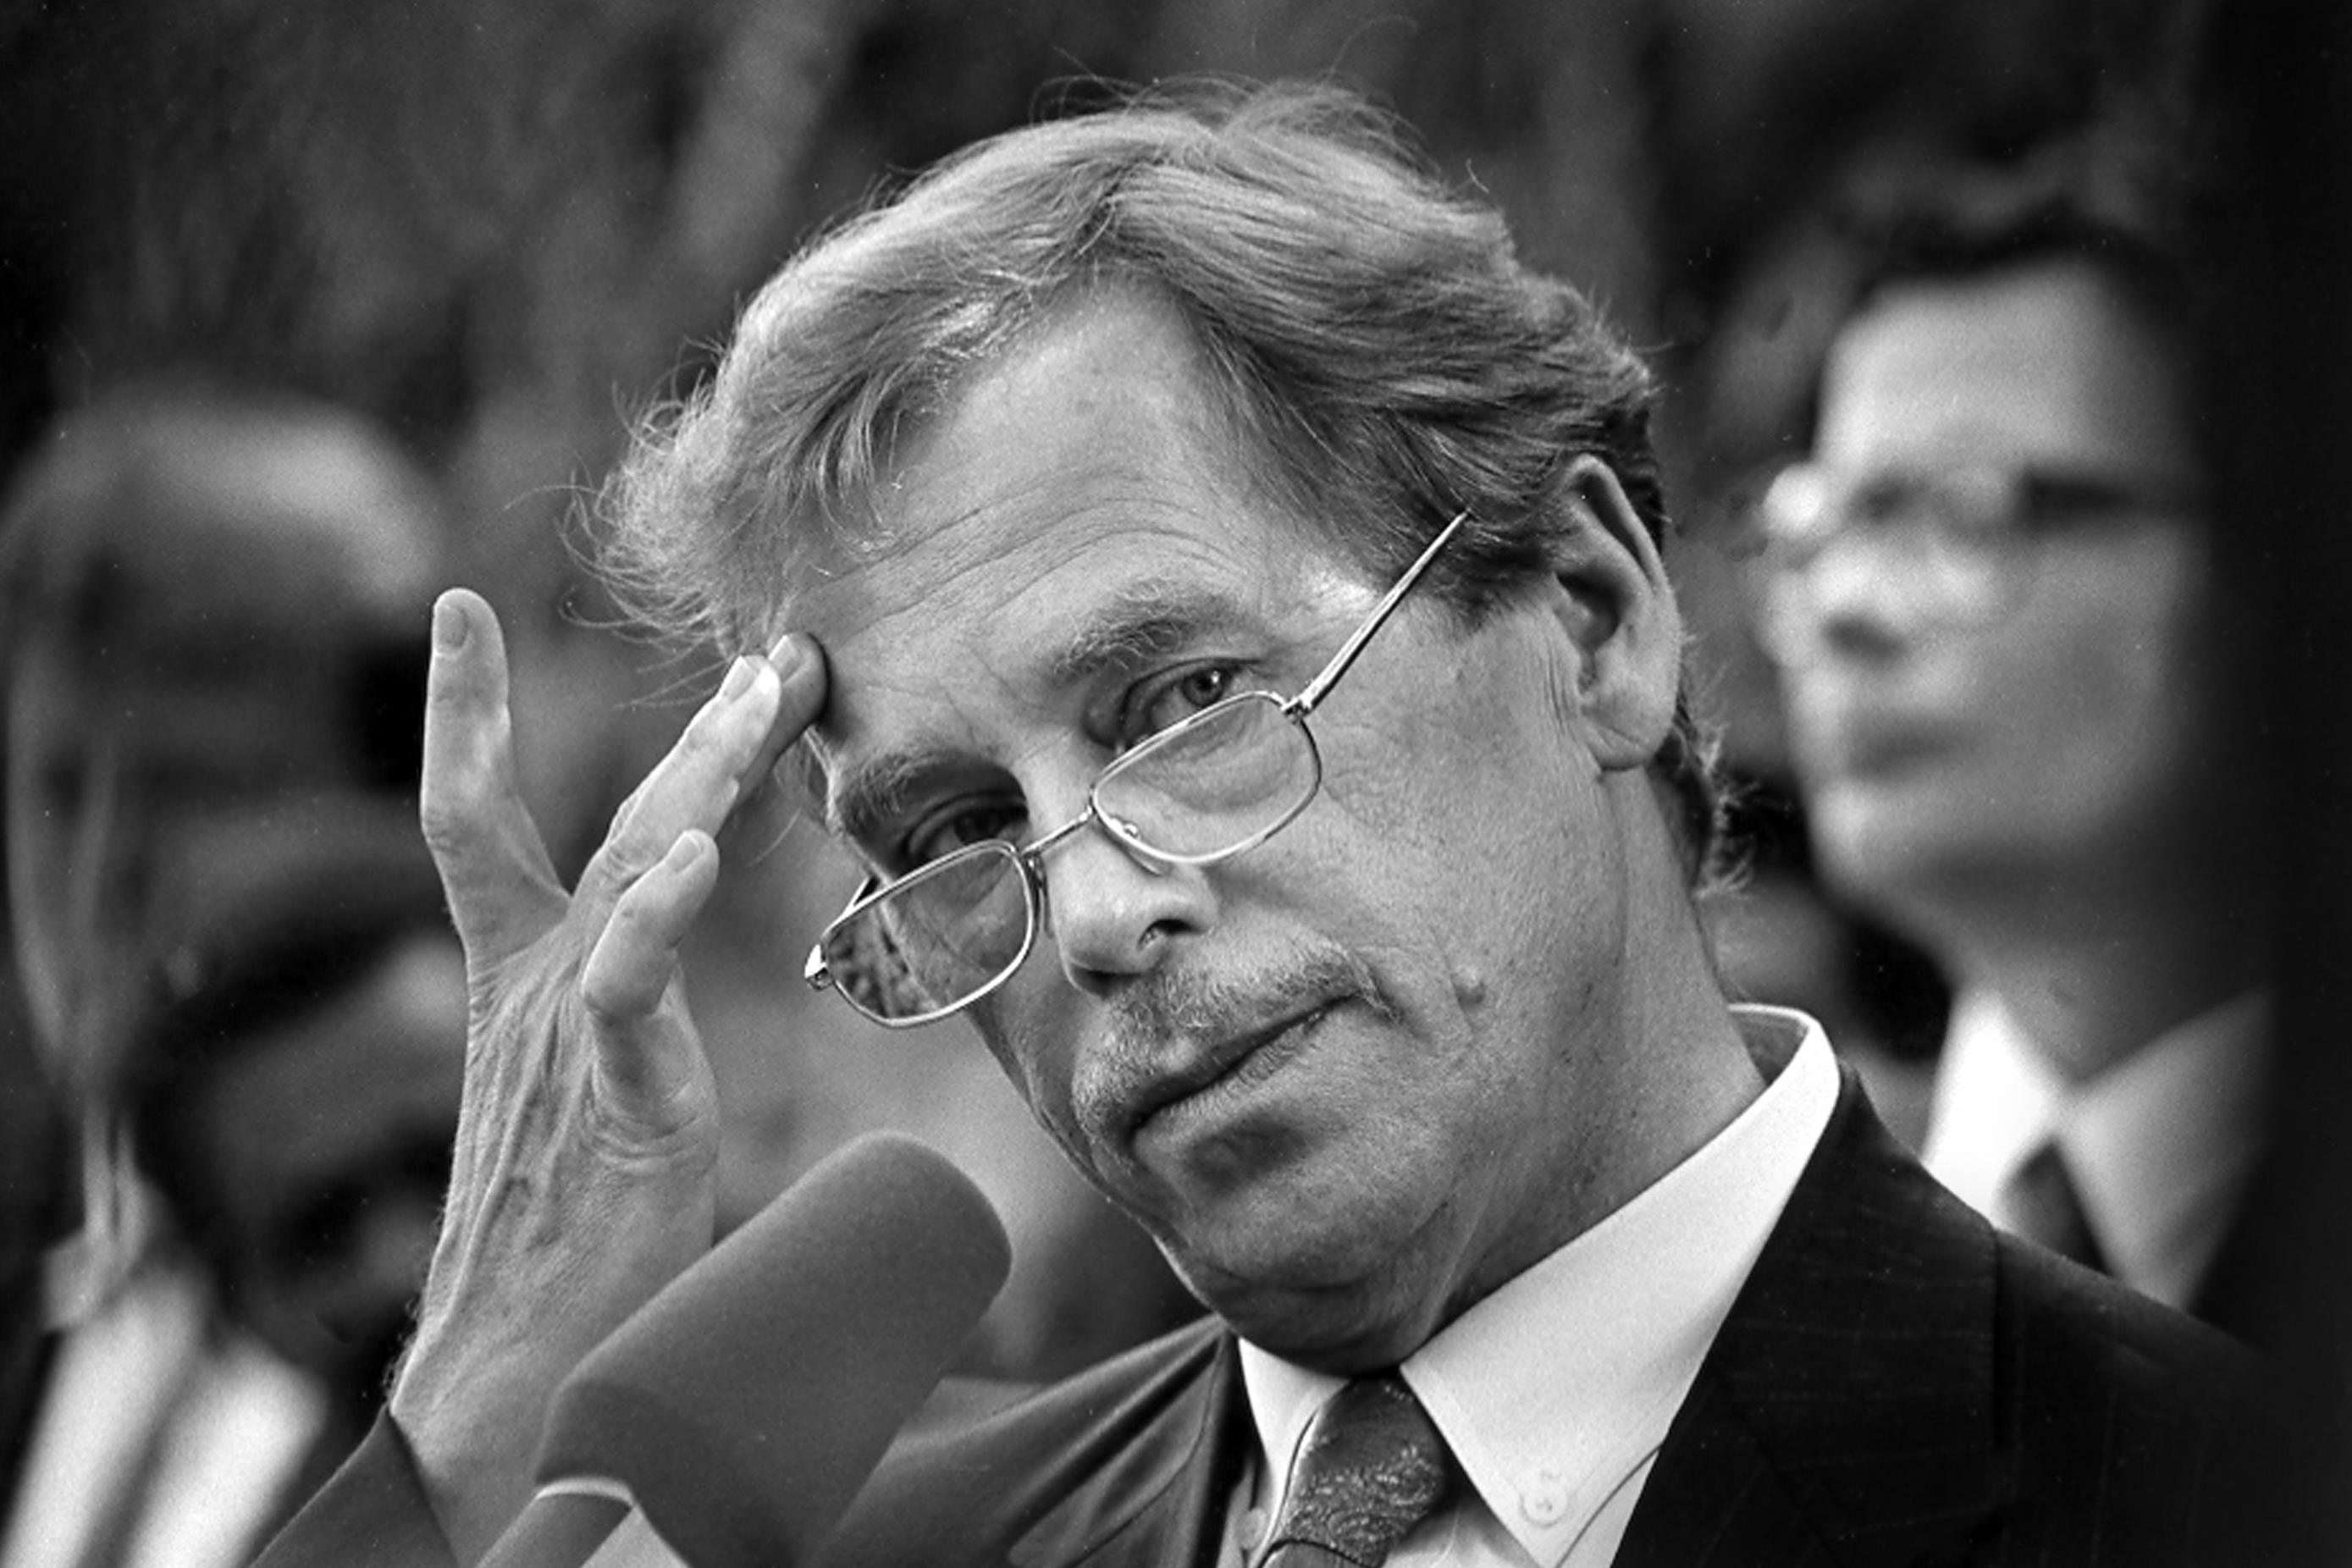 Bracing for President Trump with thoughts on hope from Vaclav Havel